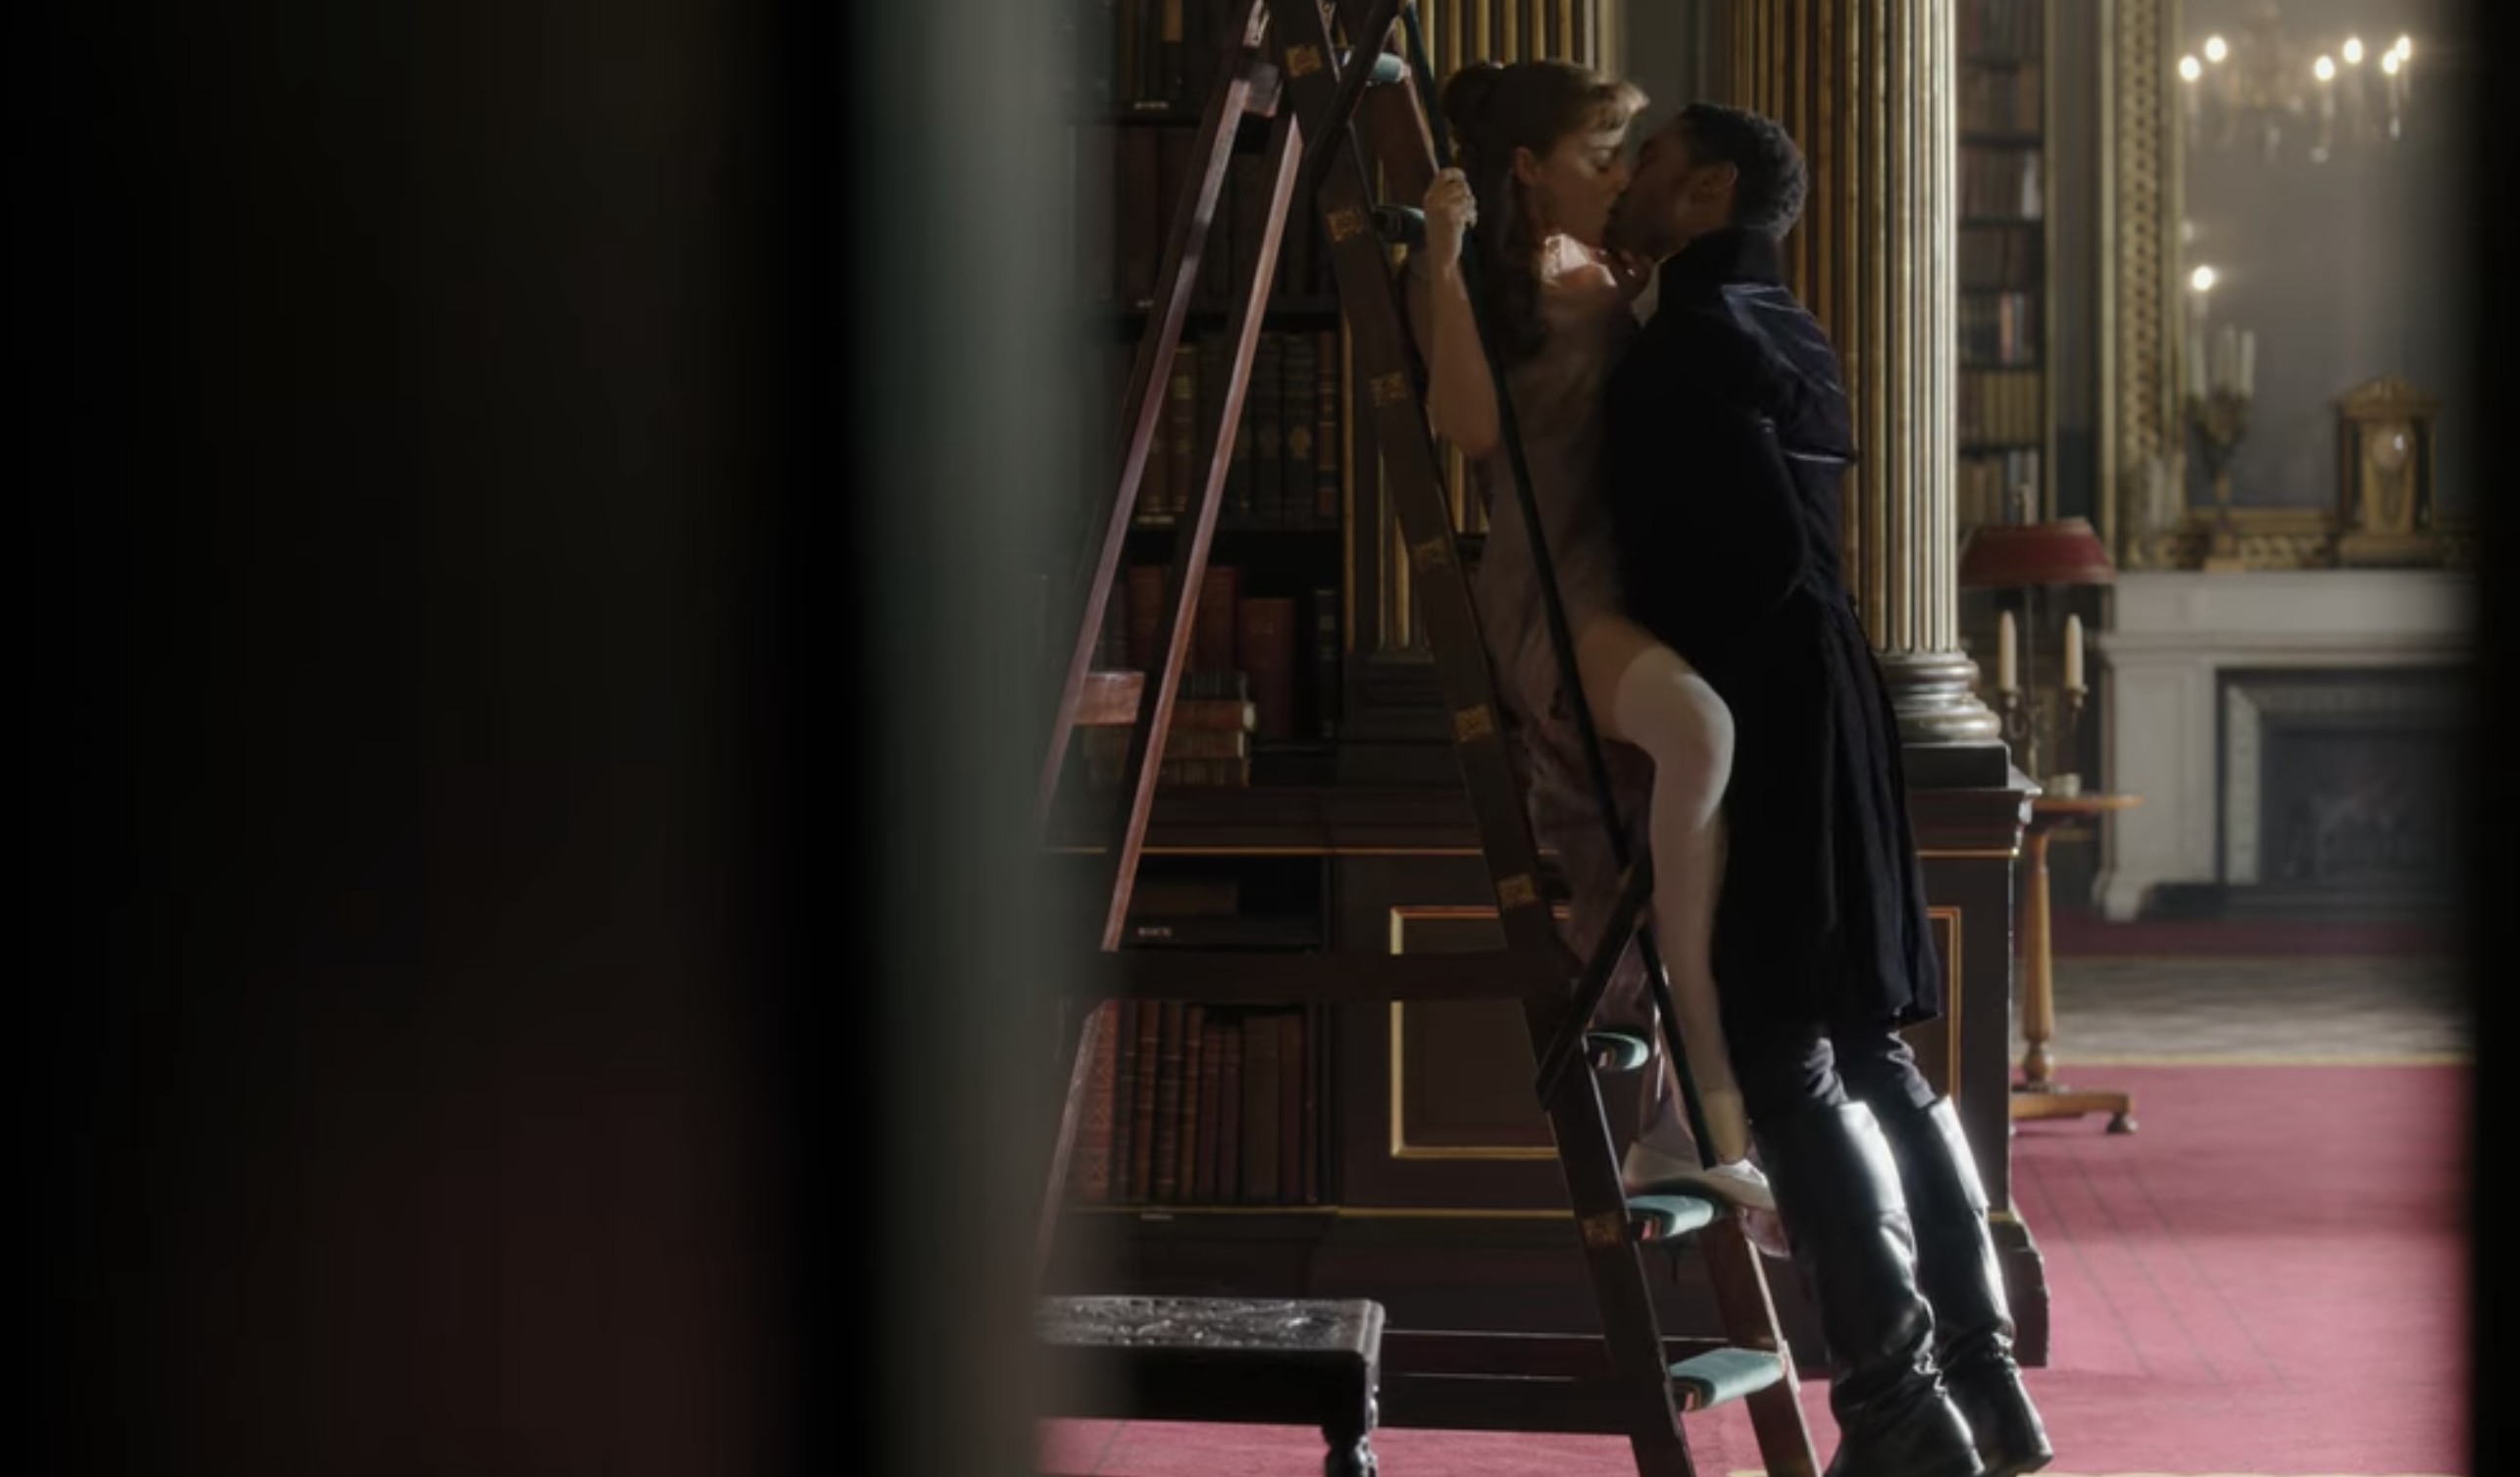 Daphne and Simon kissing in the library